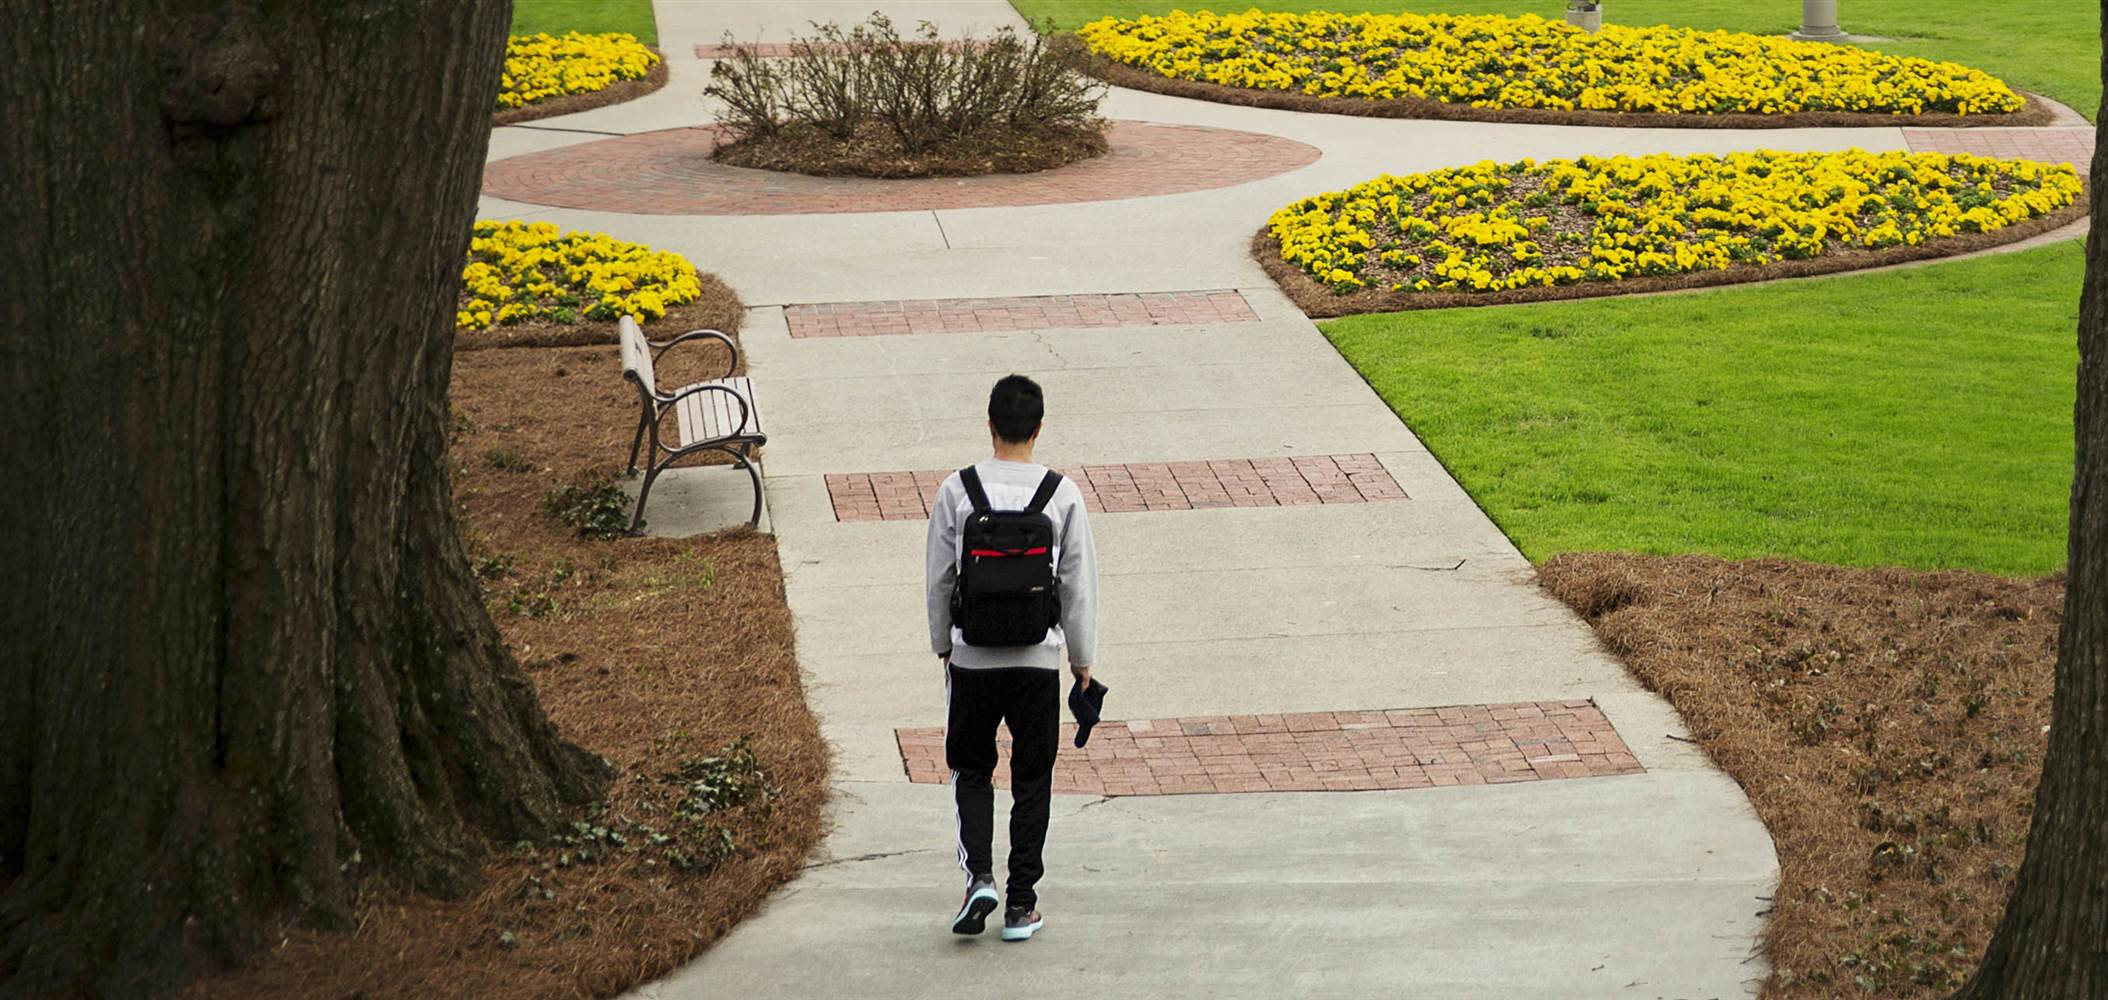 Thousands of College Students Could Be Homeless, Study Suggests ...